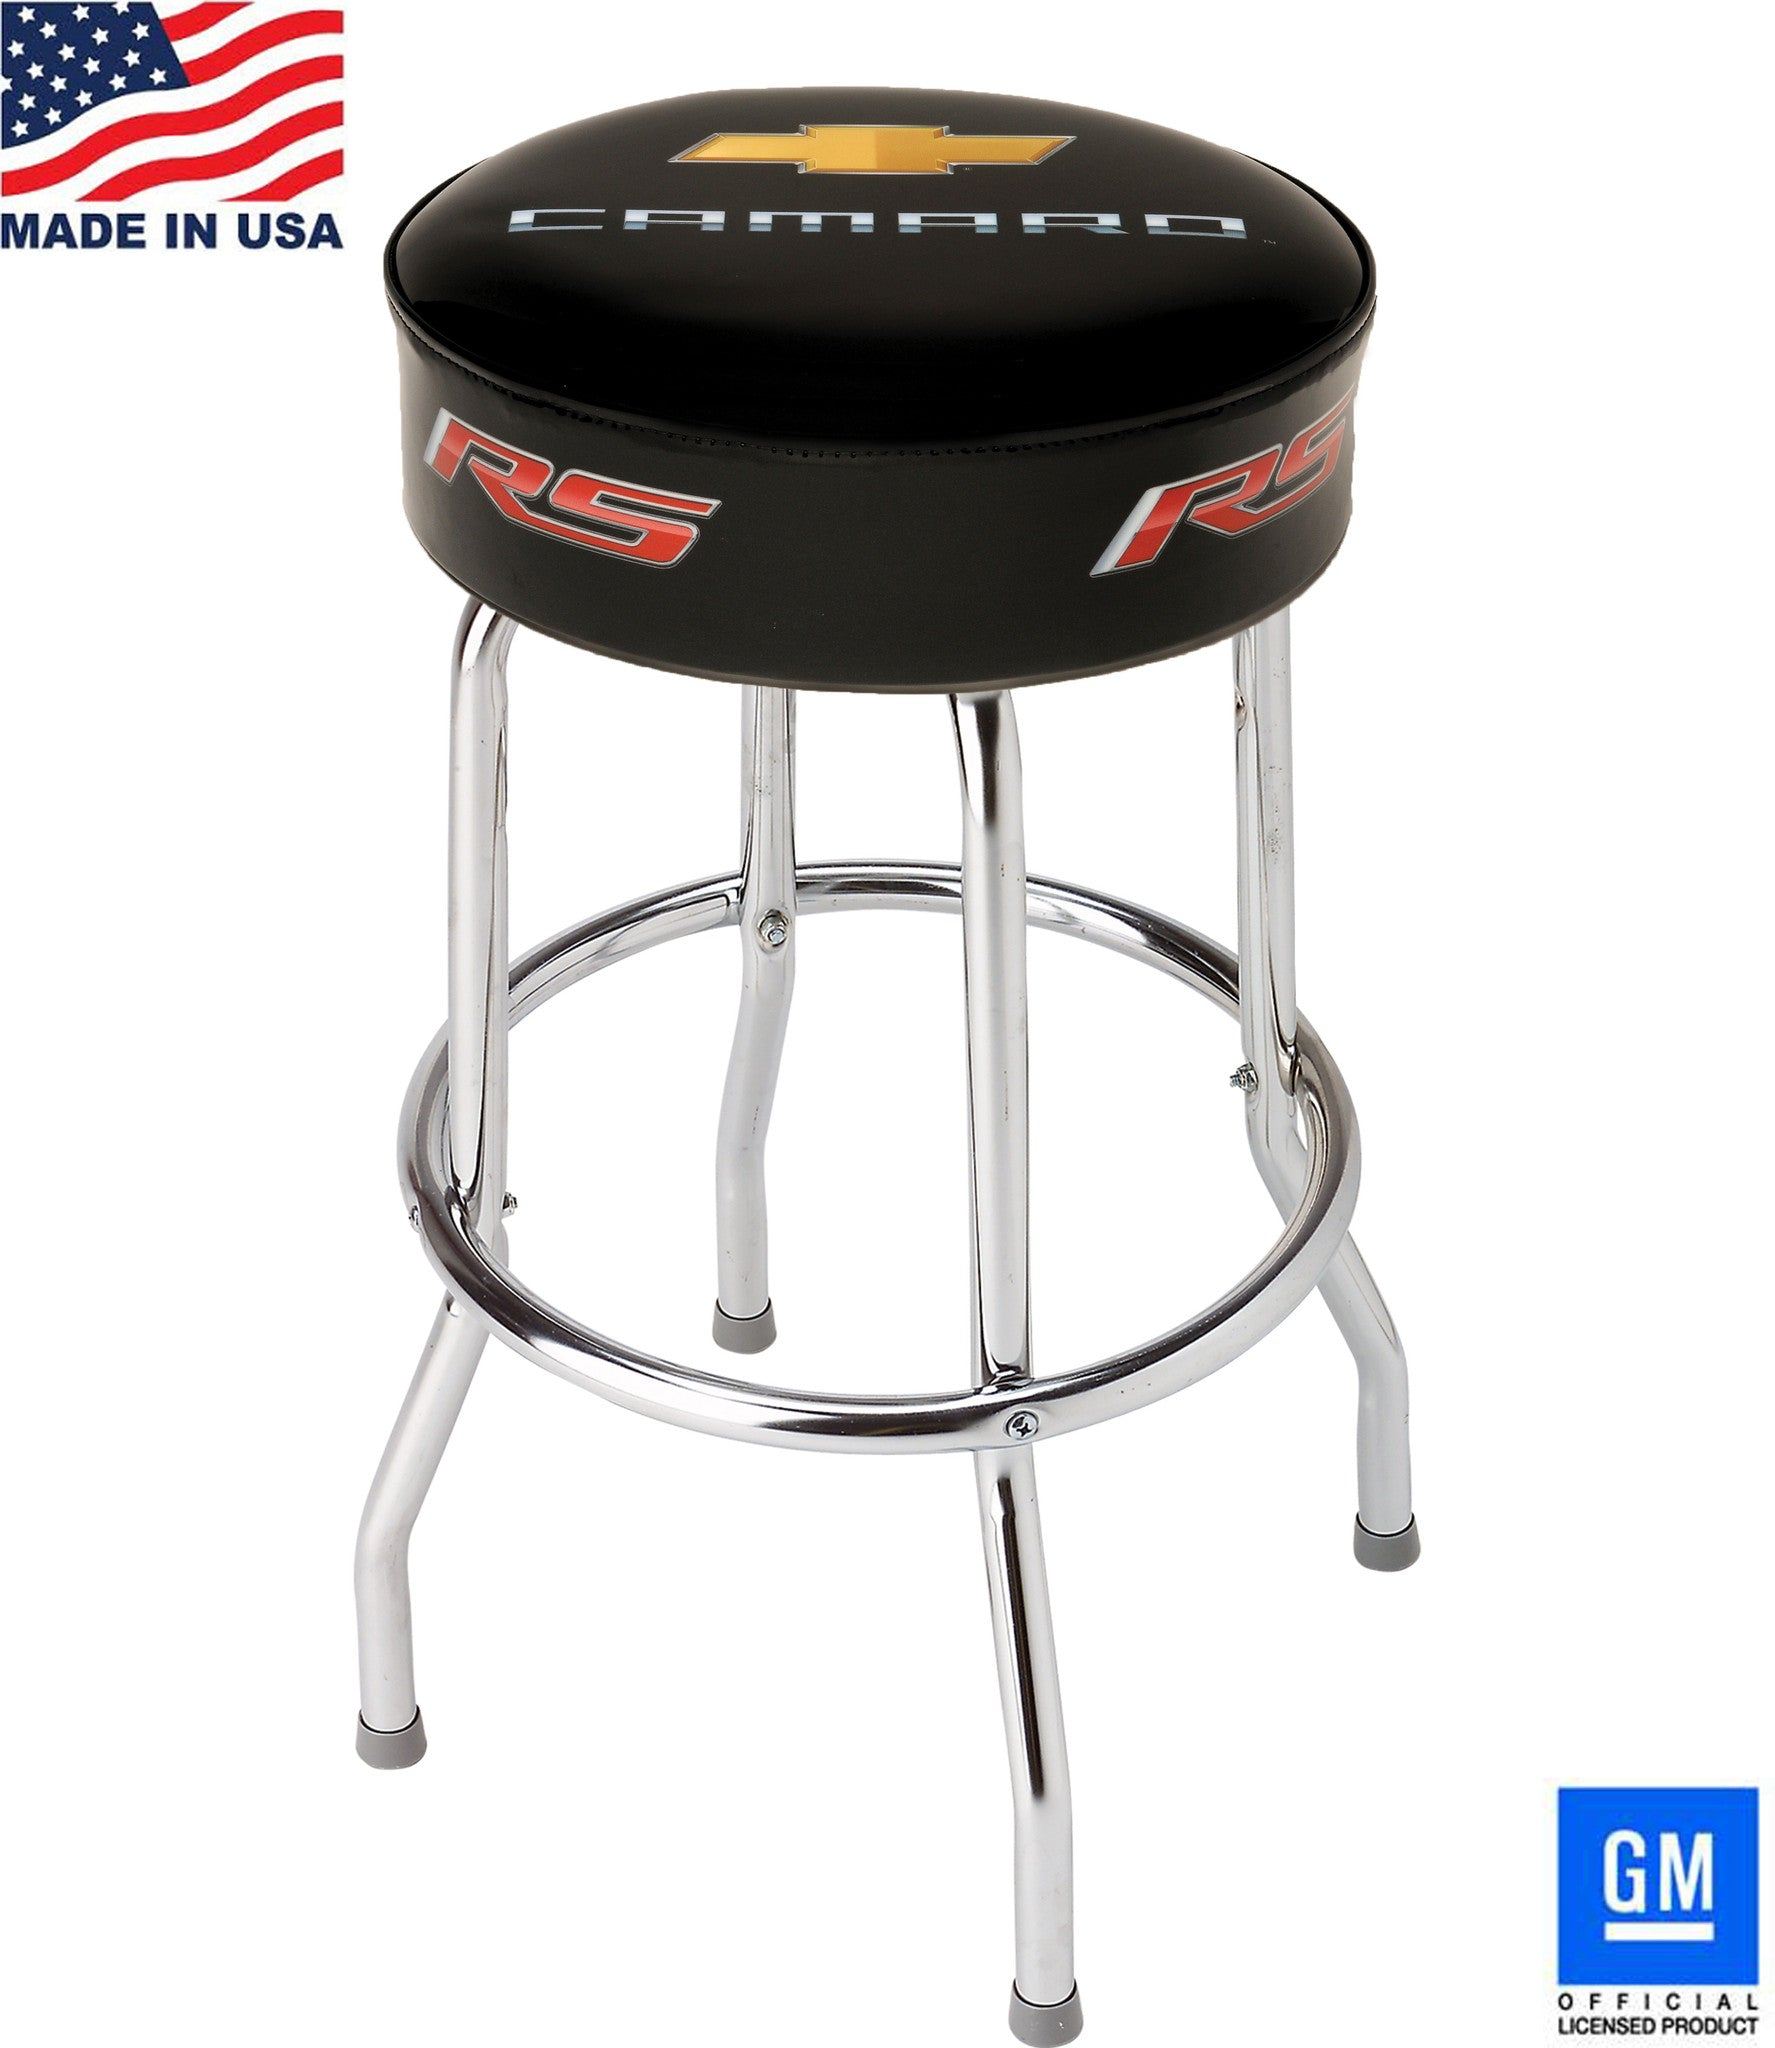 Surprising Camaro Rs Bar Stool For Counter Or Shop 18 24 Or 30 Machost Co Dining Chair Design Ideas Machostcouk